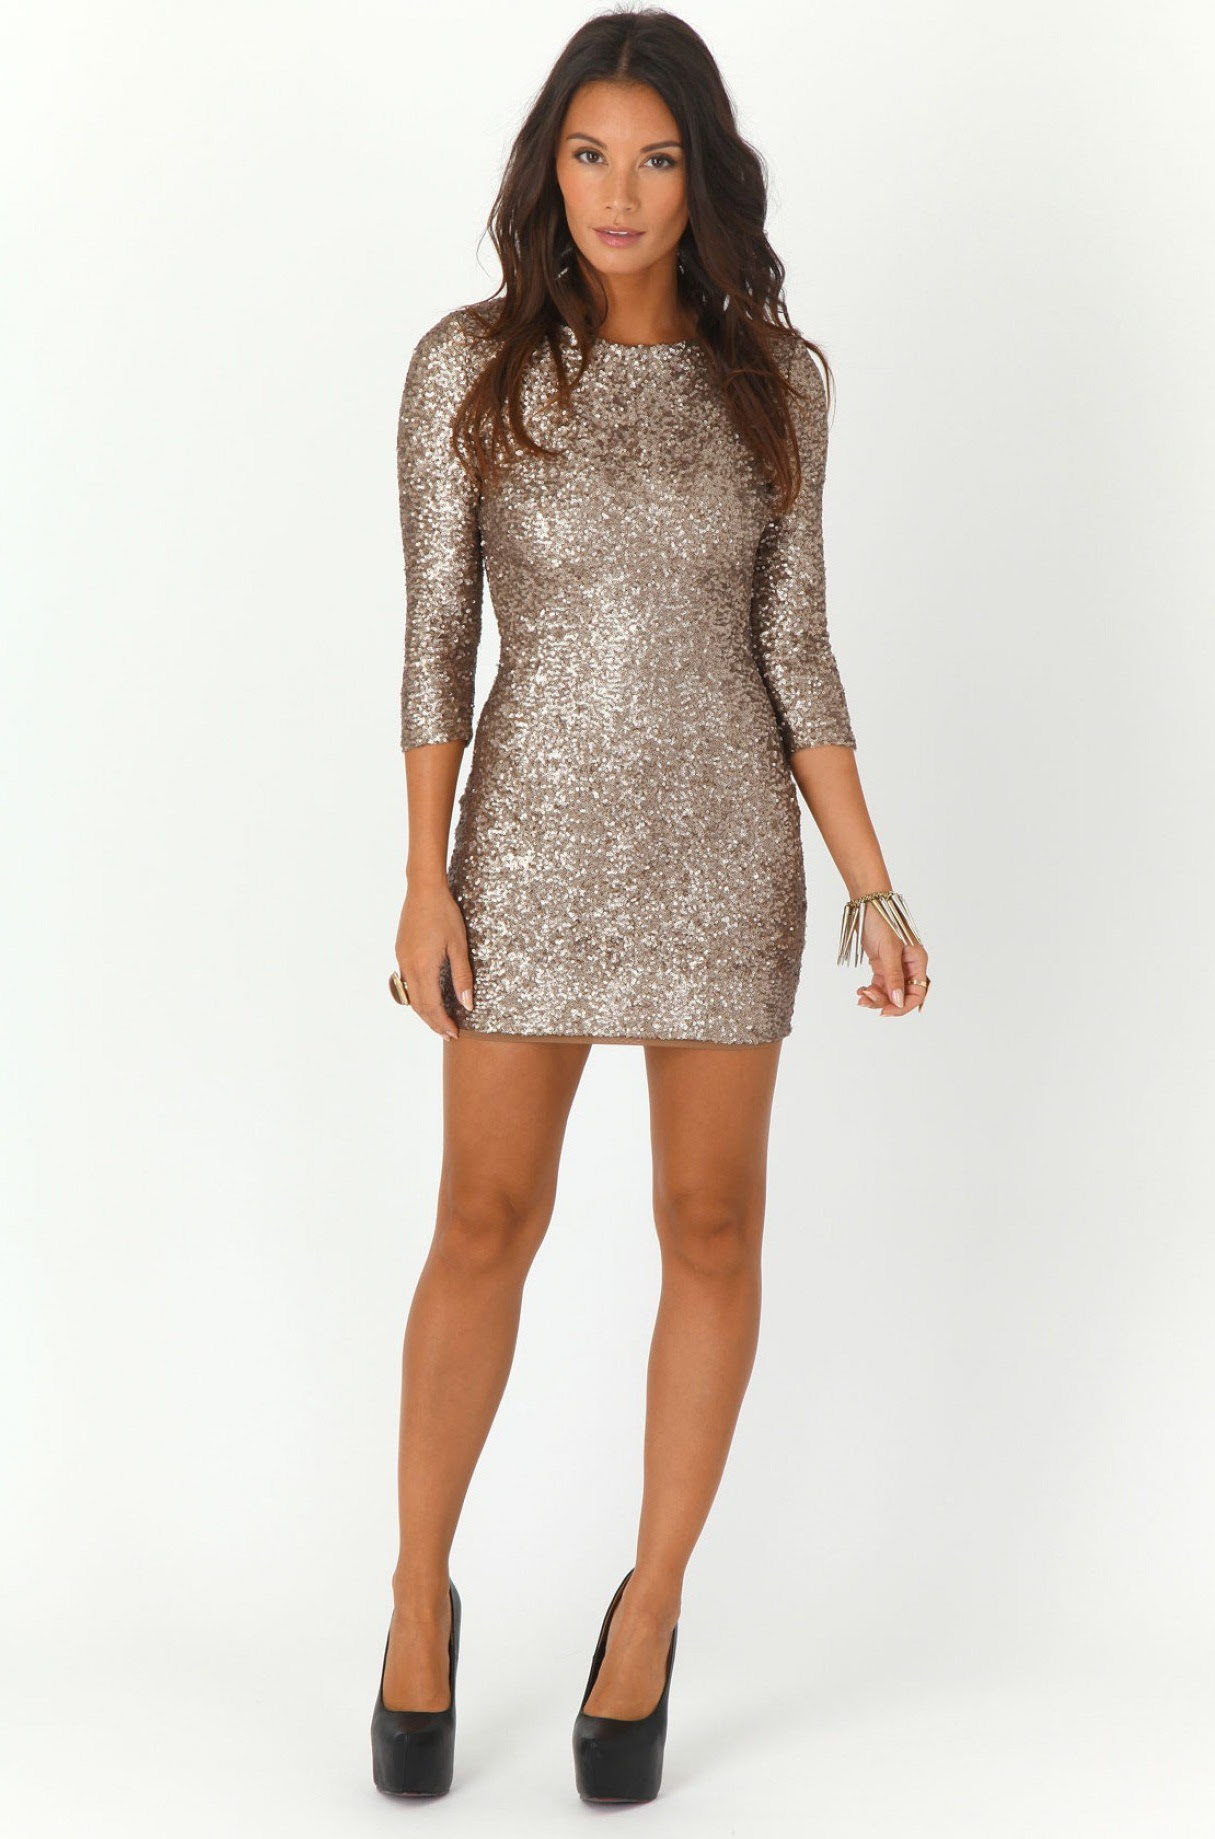 Bodycon dress for skinny girl up images victoria mall